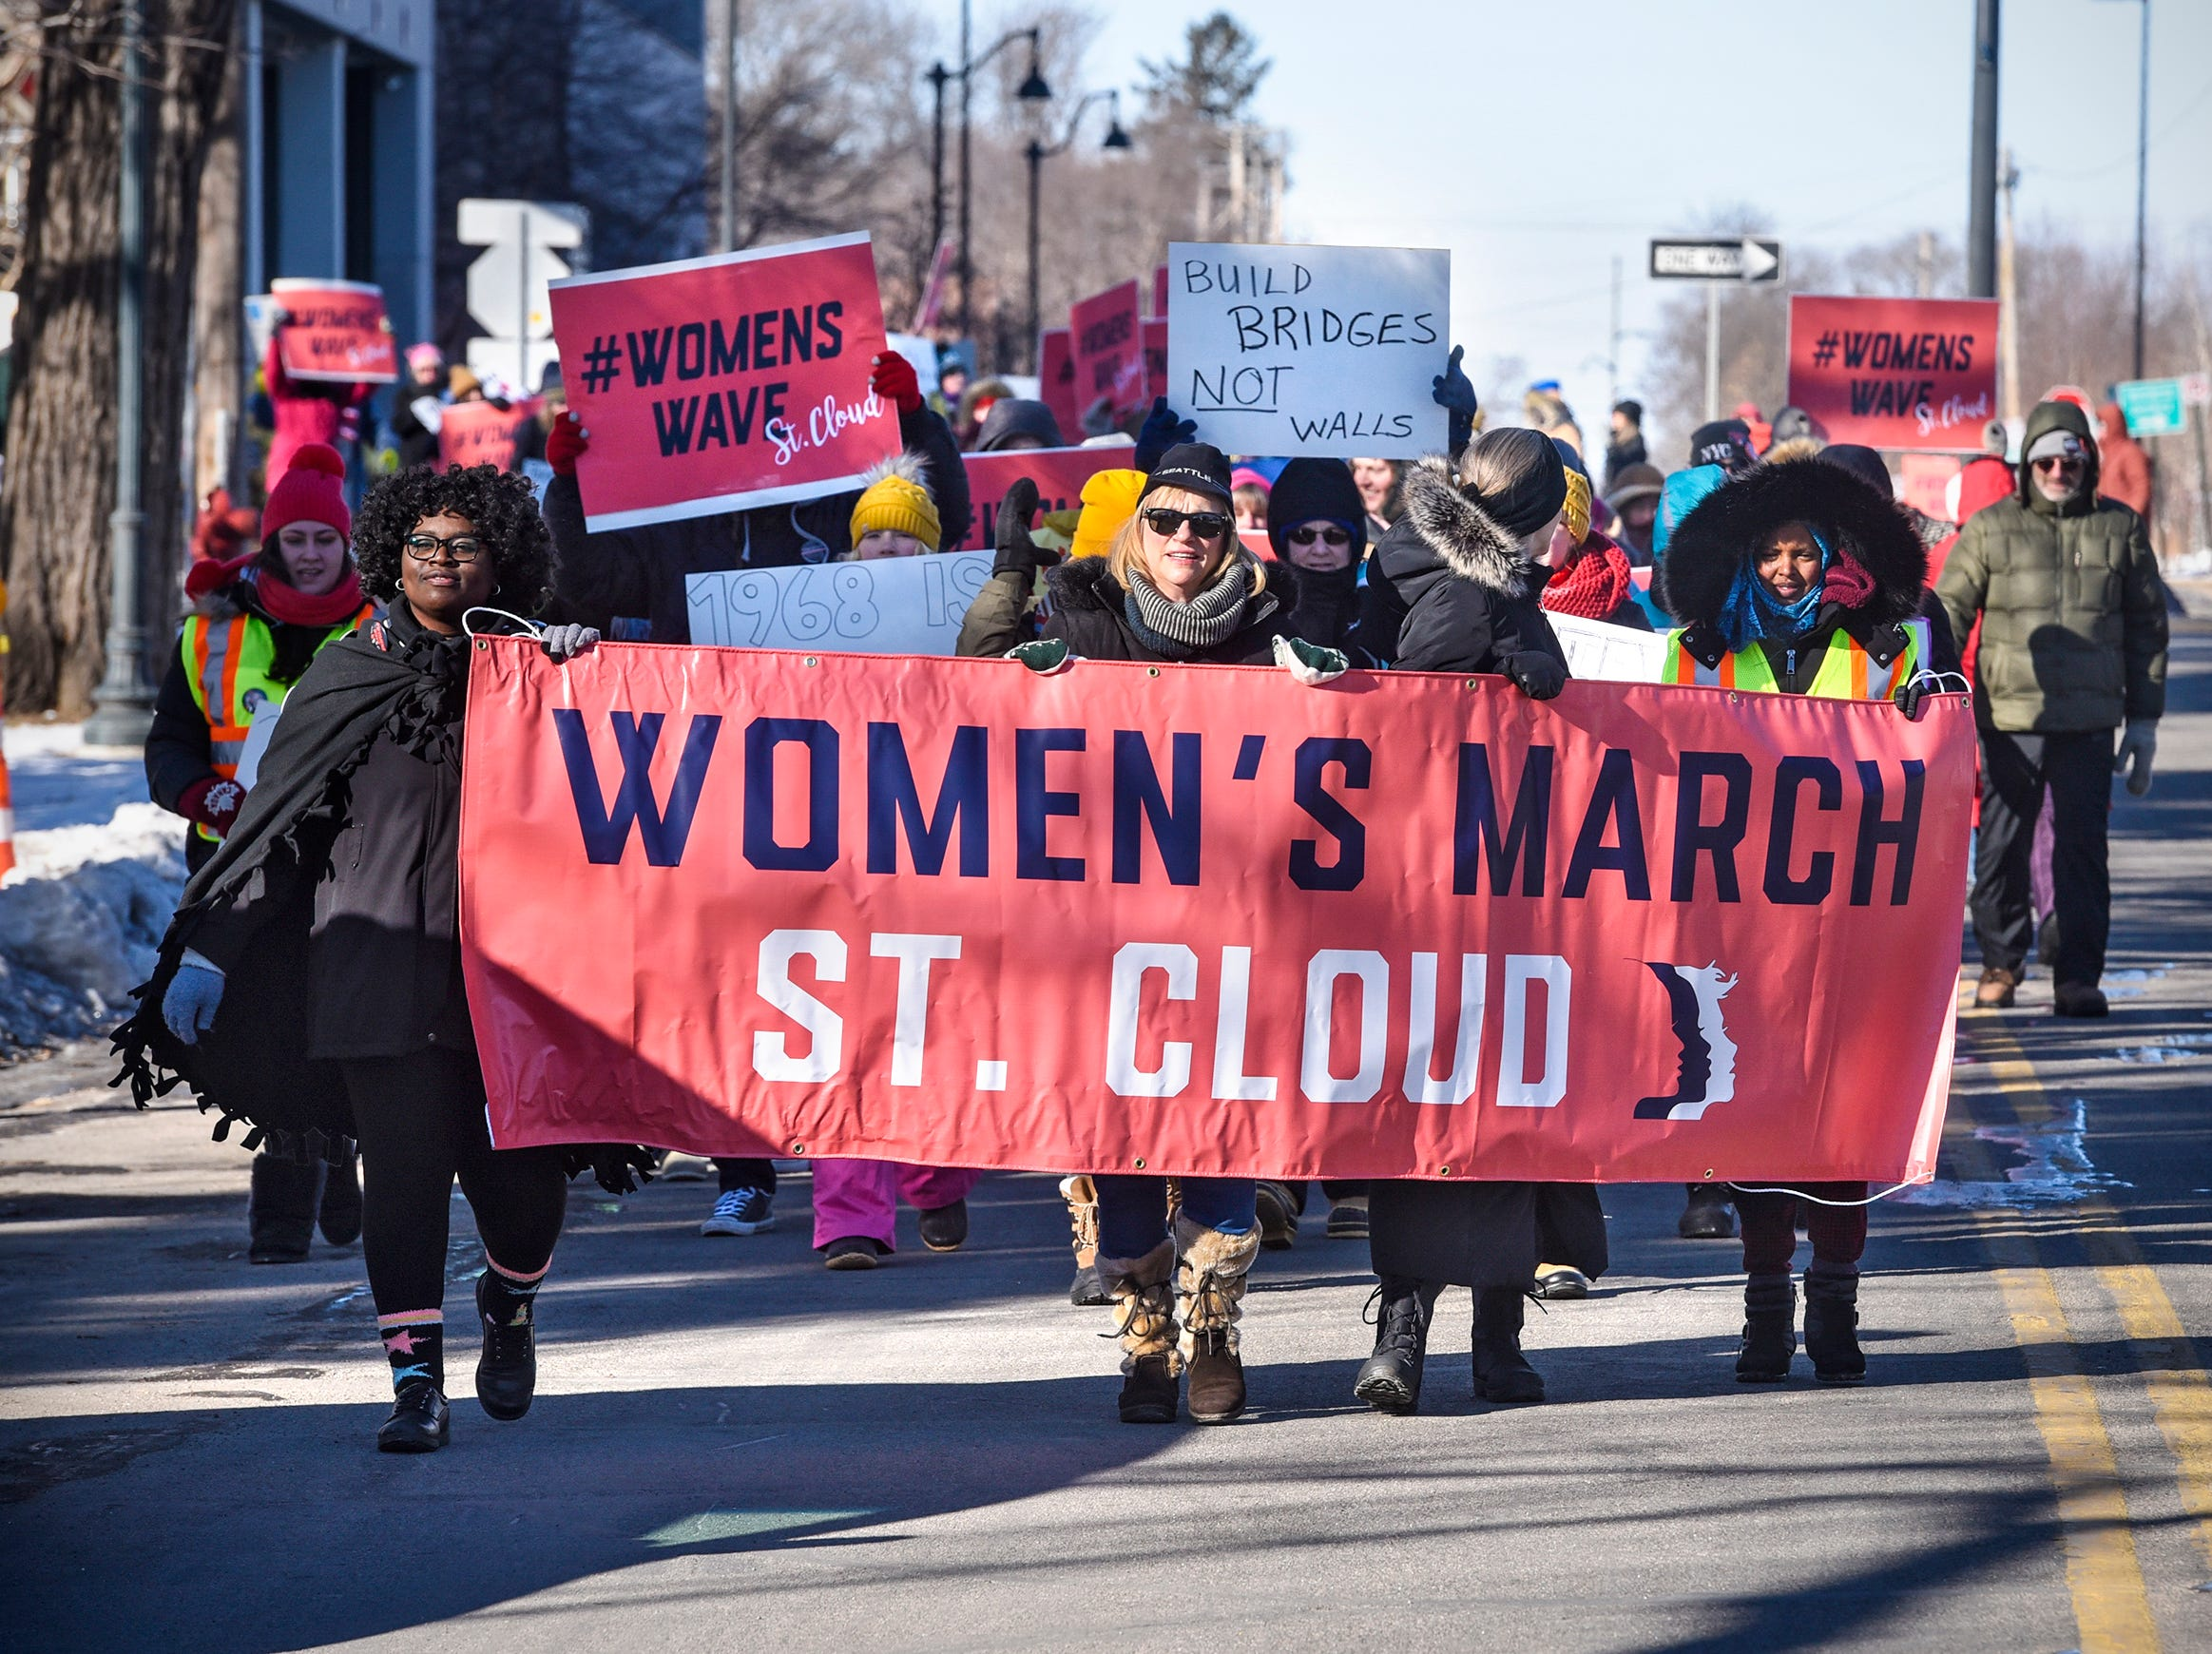 'March on': WomensWave speakers tell St. Cloud crowd to keep fighting for equality, justice